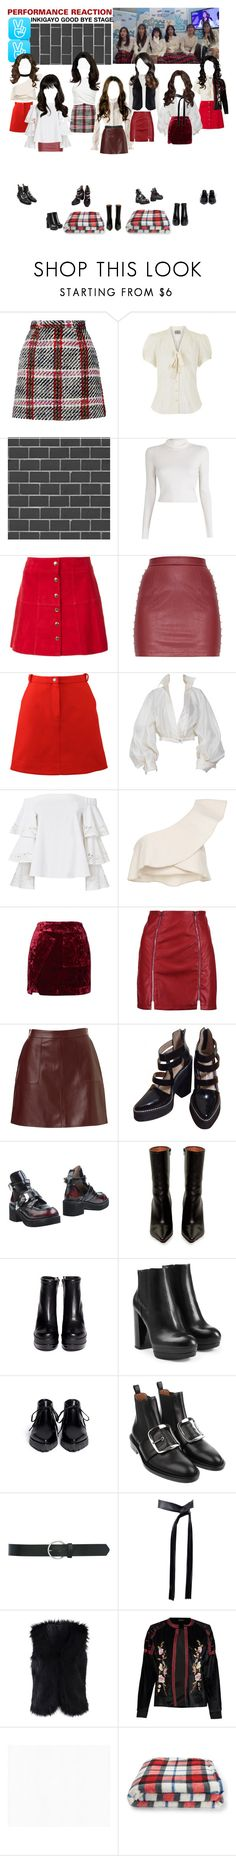 """«V APP» ROCKIT SHEDS TEARS"" by cw-entertainment ❤ liked on Polyvore featuring Carven, Debbie McKeegan, A.L.C., Ines de la Fressange, Claude Montana, Exclusive for Intermix, Isabel Marant, Boohoo, Jeffrey Campbell and Vetements"